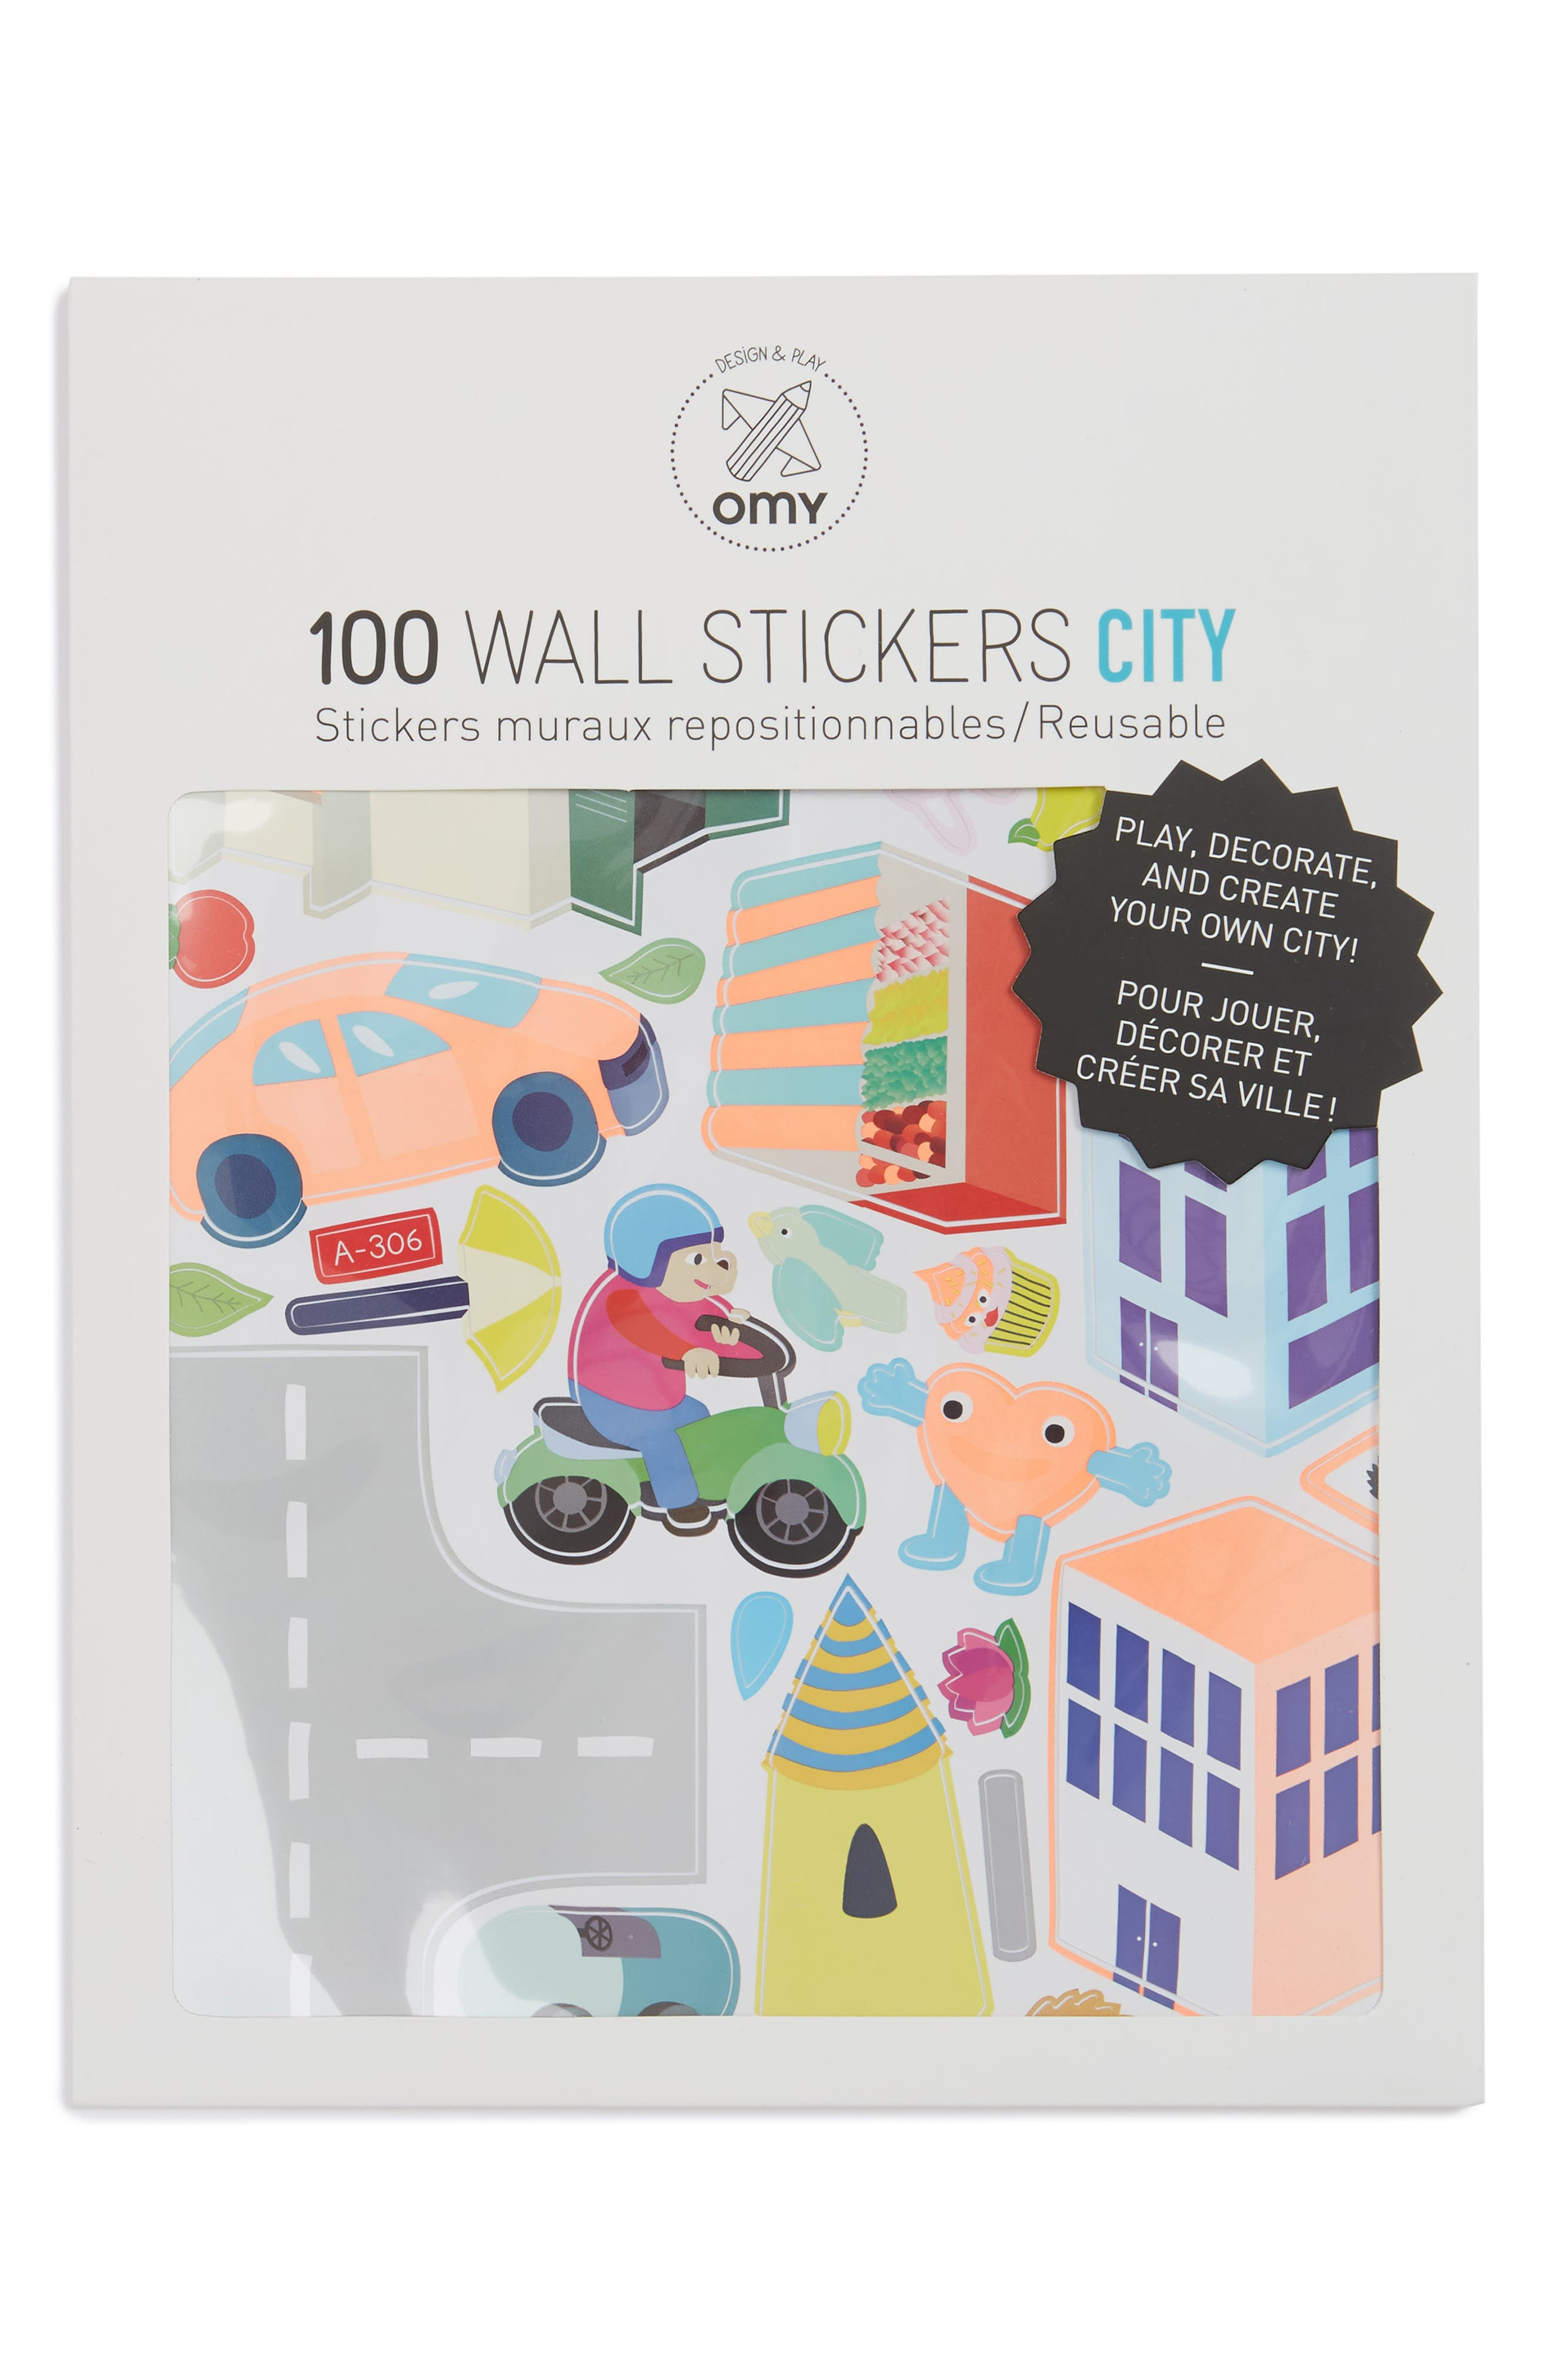 OMY City Set of 100 Reusable Wall Stickers